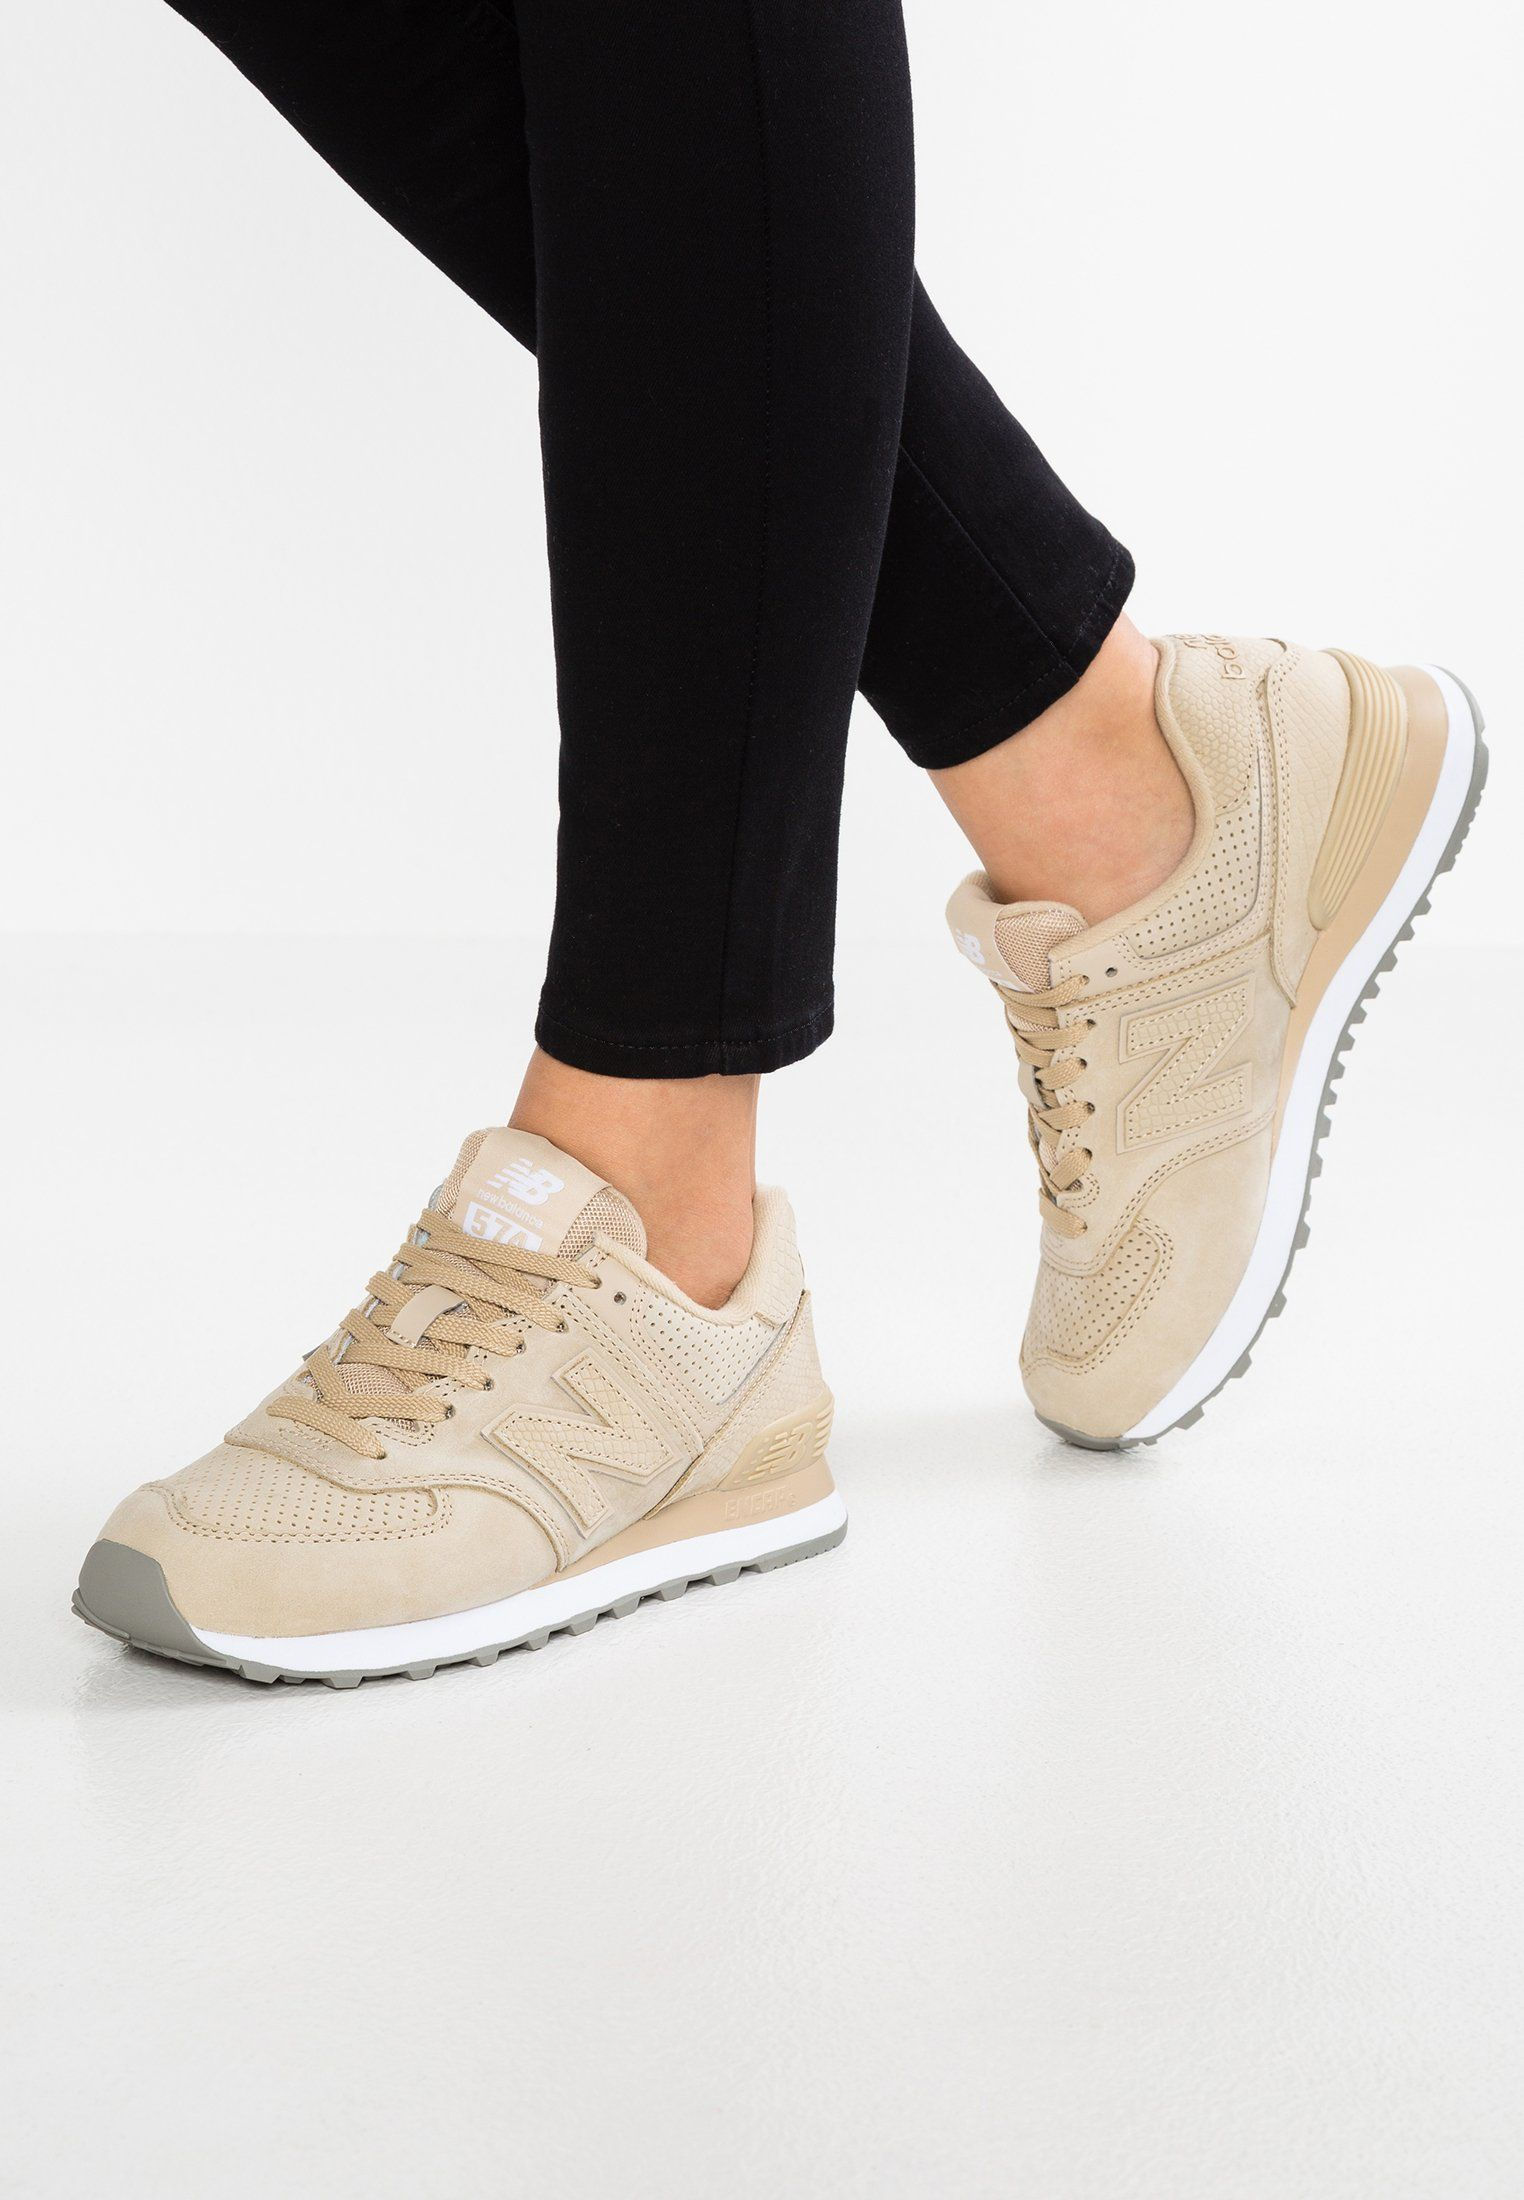 new concept 483b6 fb380 WL574 - Baskets basses - beige @ ZALANDO.FR 🛒 | Nike sports ...